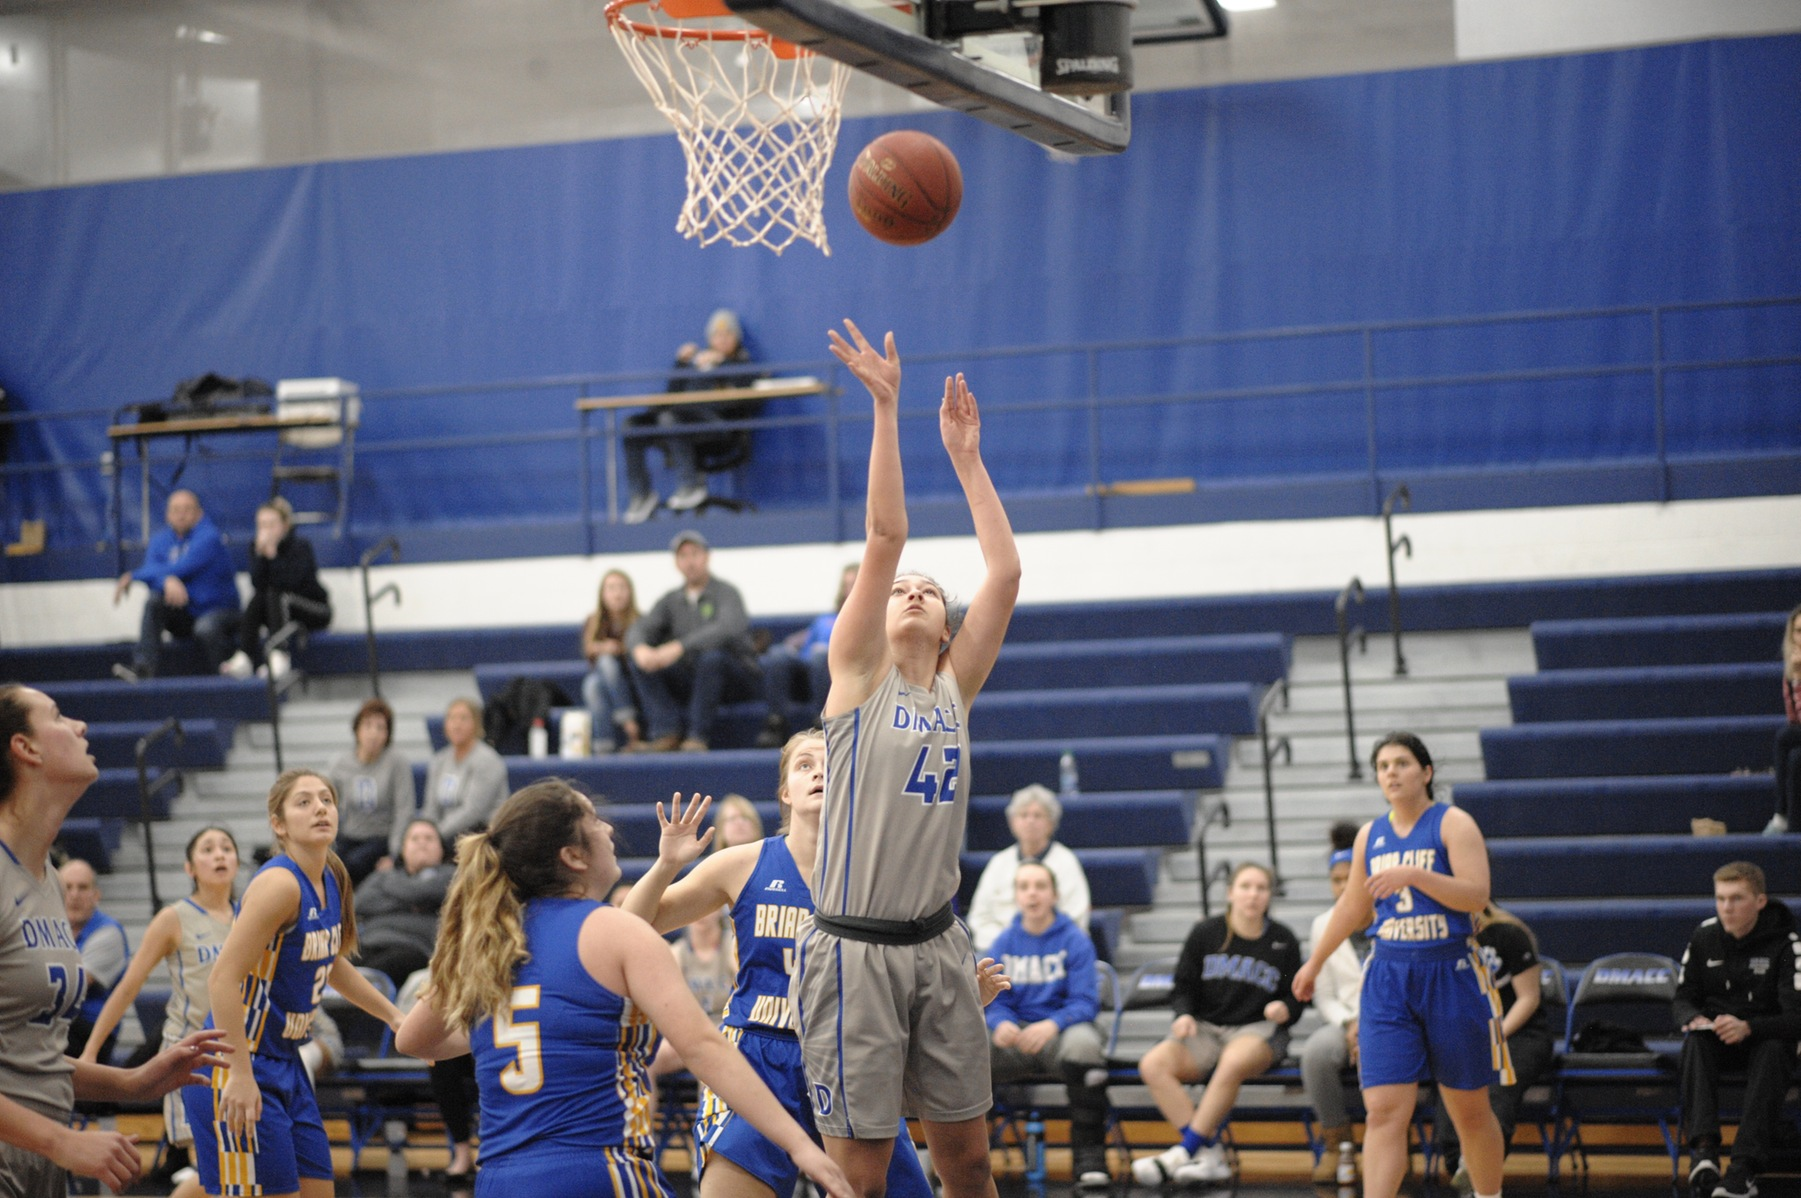 Horn gets 18 as DMACC women's basketball team tops SWCC, 86-77